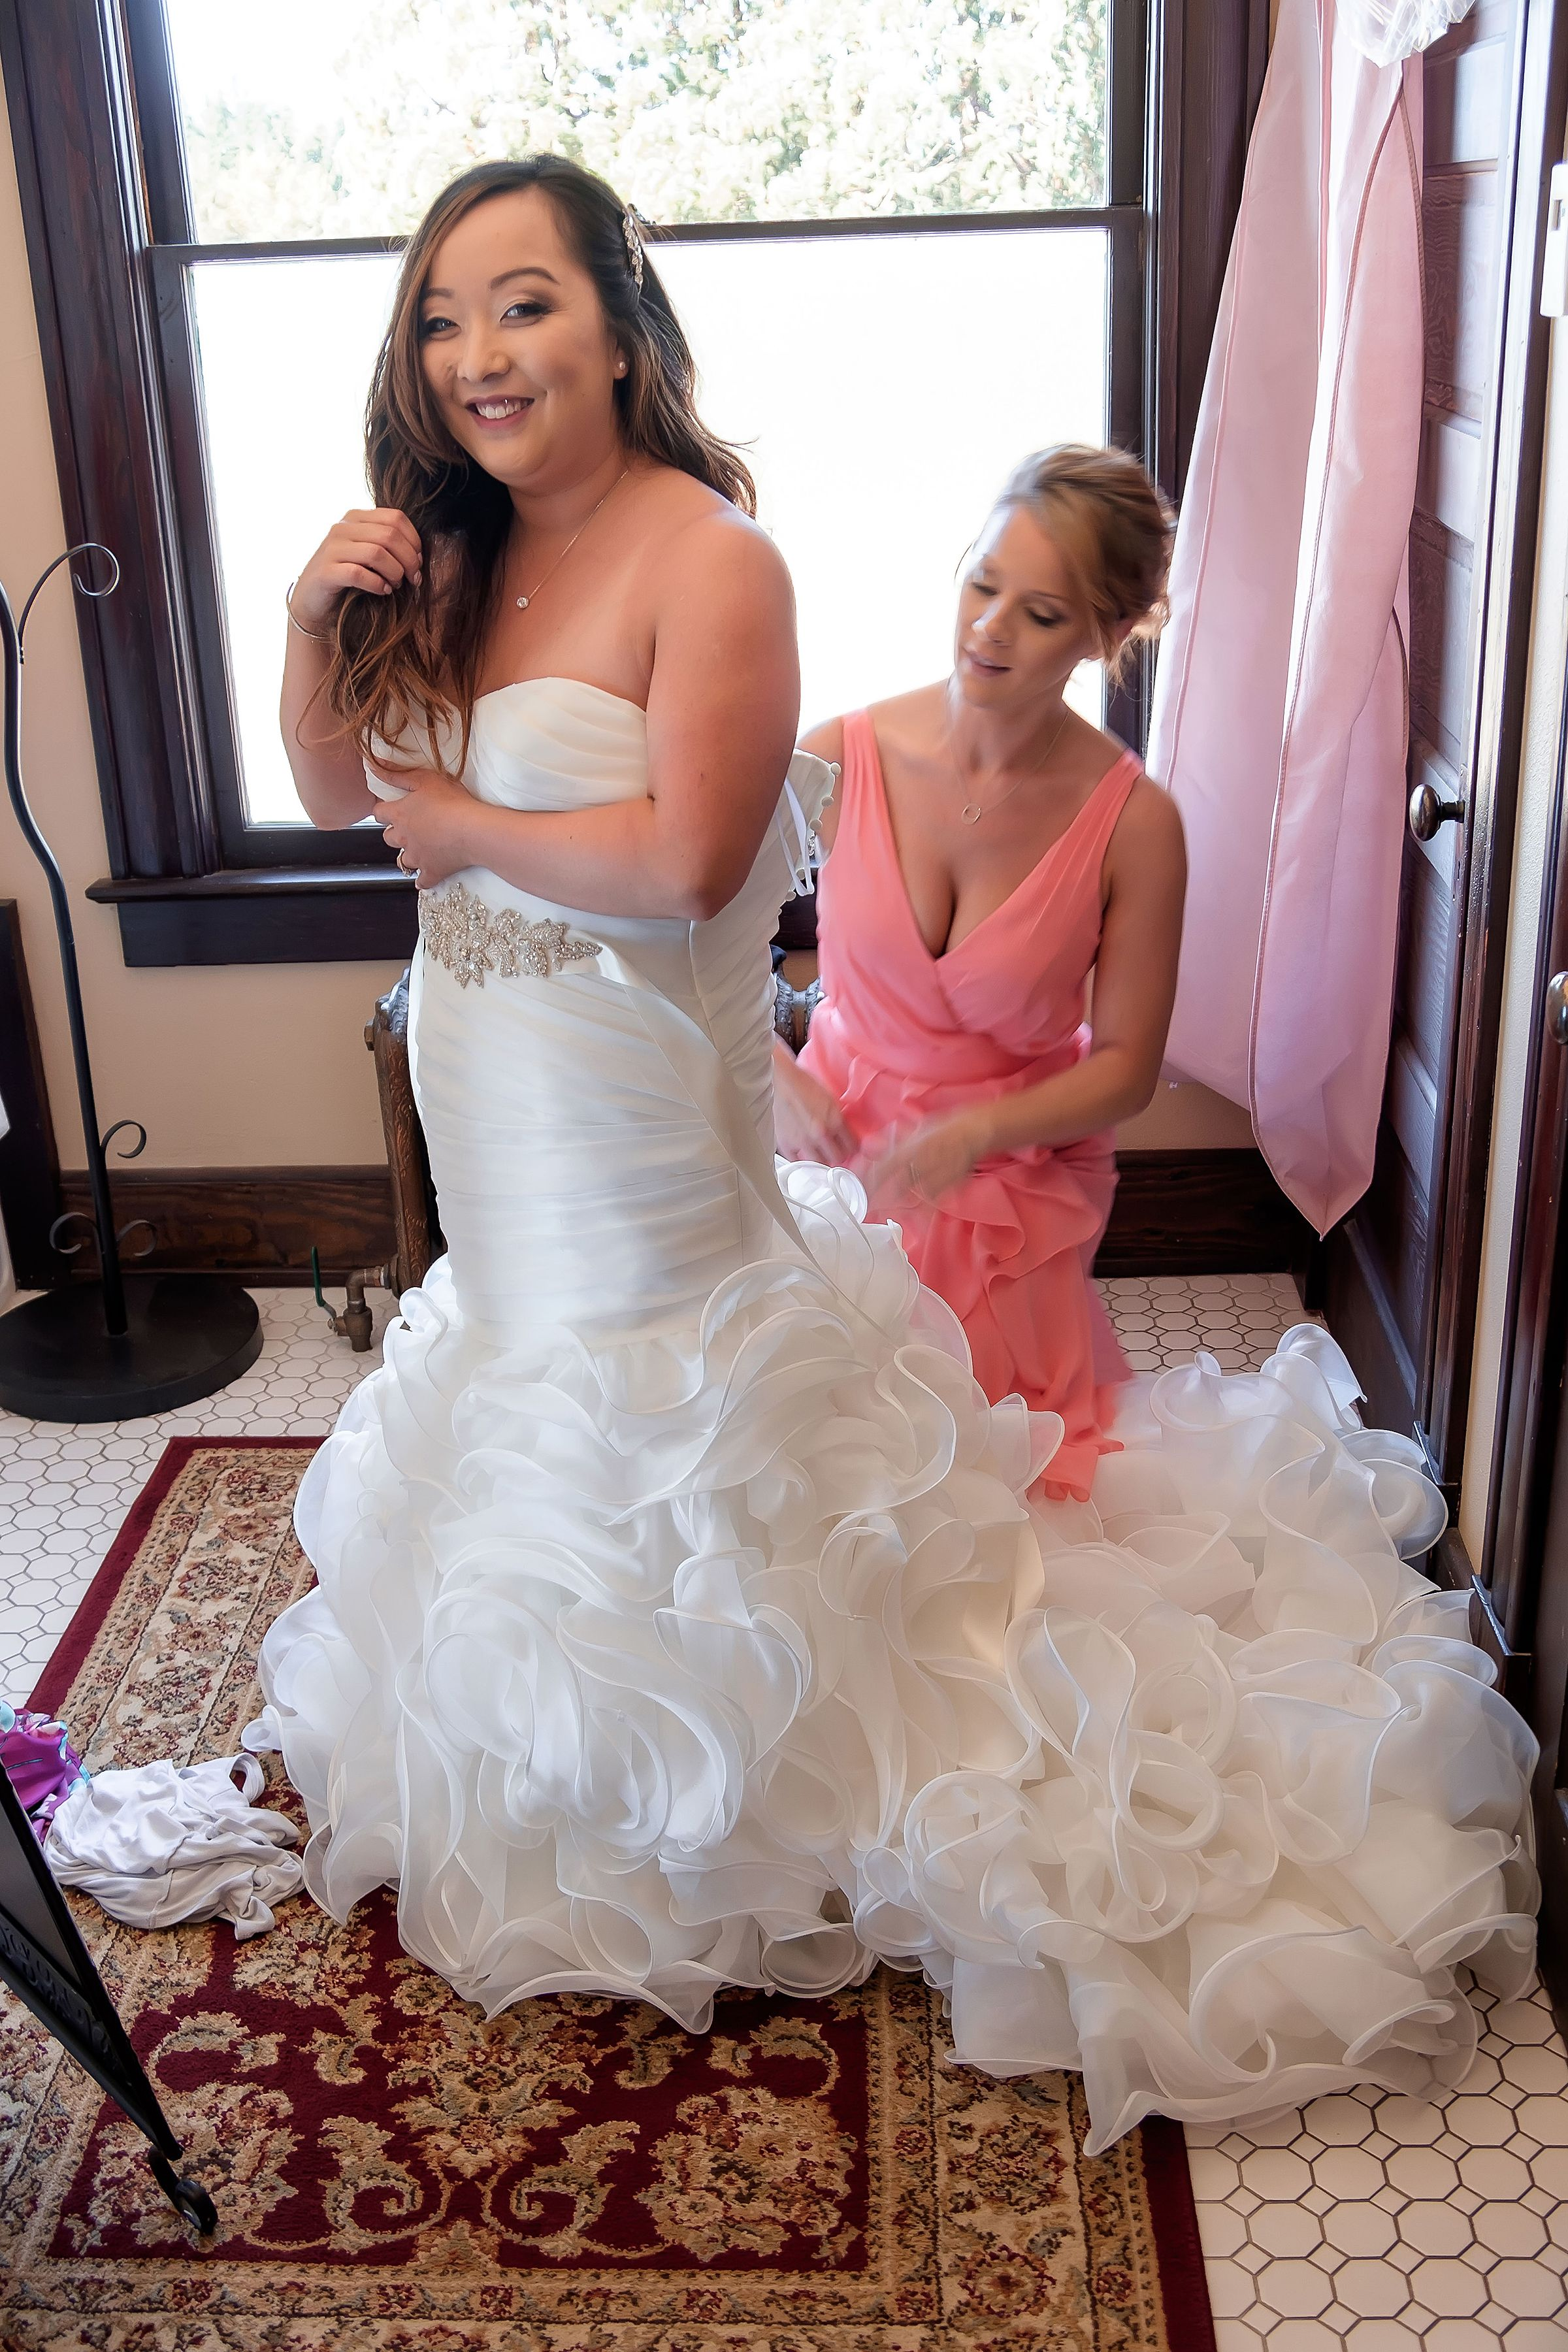 Bride getting into dress.jpg